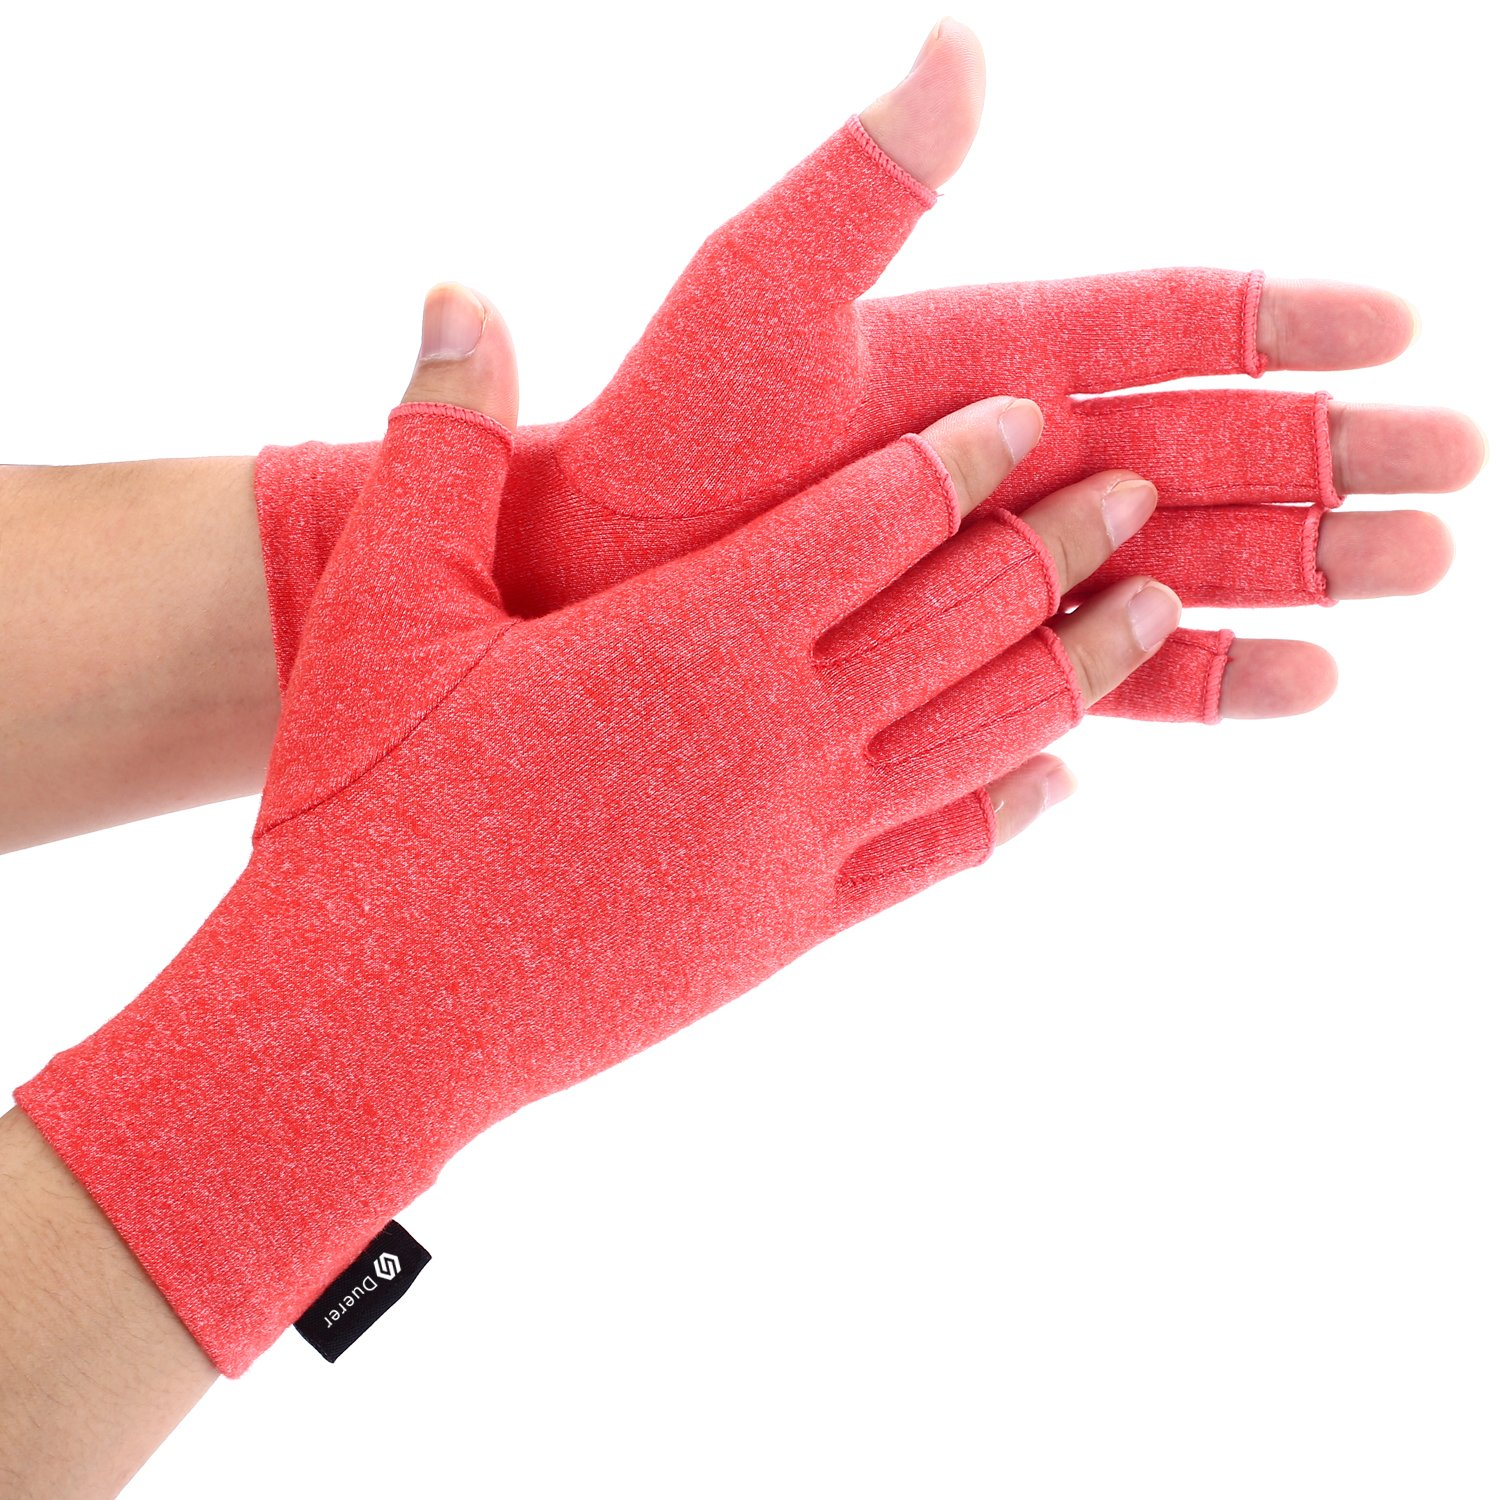 Duerer Arthritis Gloves Women Men for RSI Carpal Tunnel Rheumatiod Fingerless Hand Thumb Compression Gloves Small Medium Large XL for Pain Relief Tendonitis